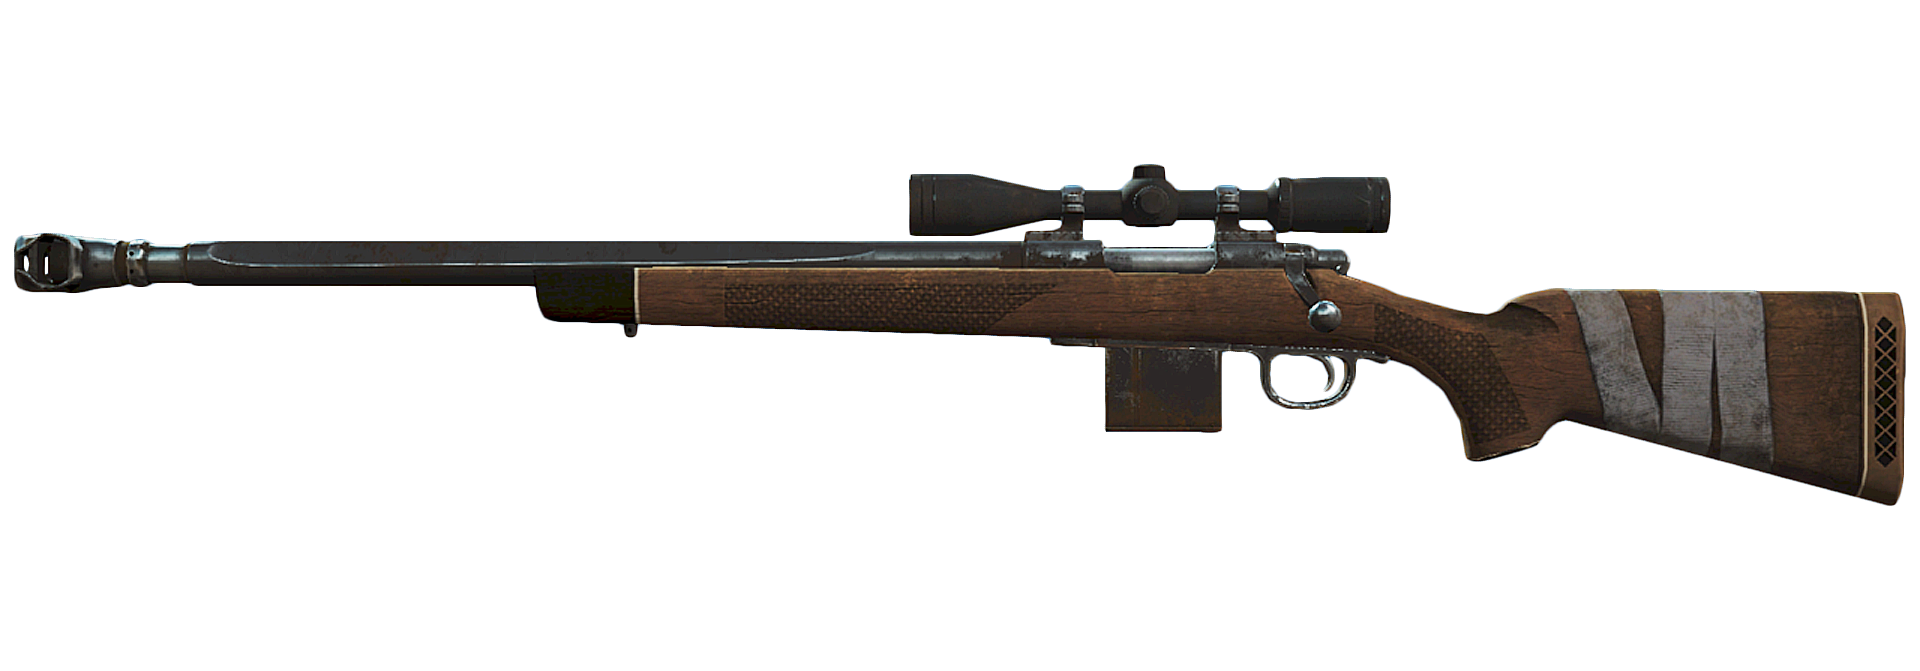 Rifle png. Image fo compensated hunting